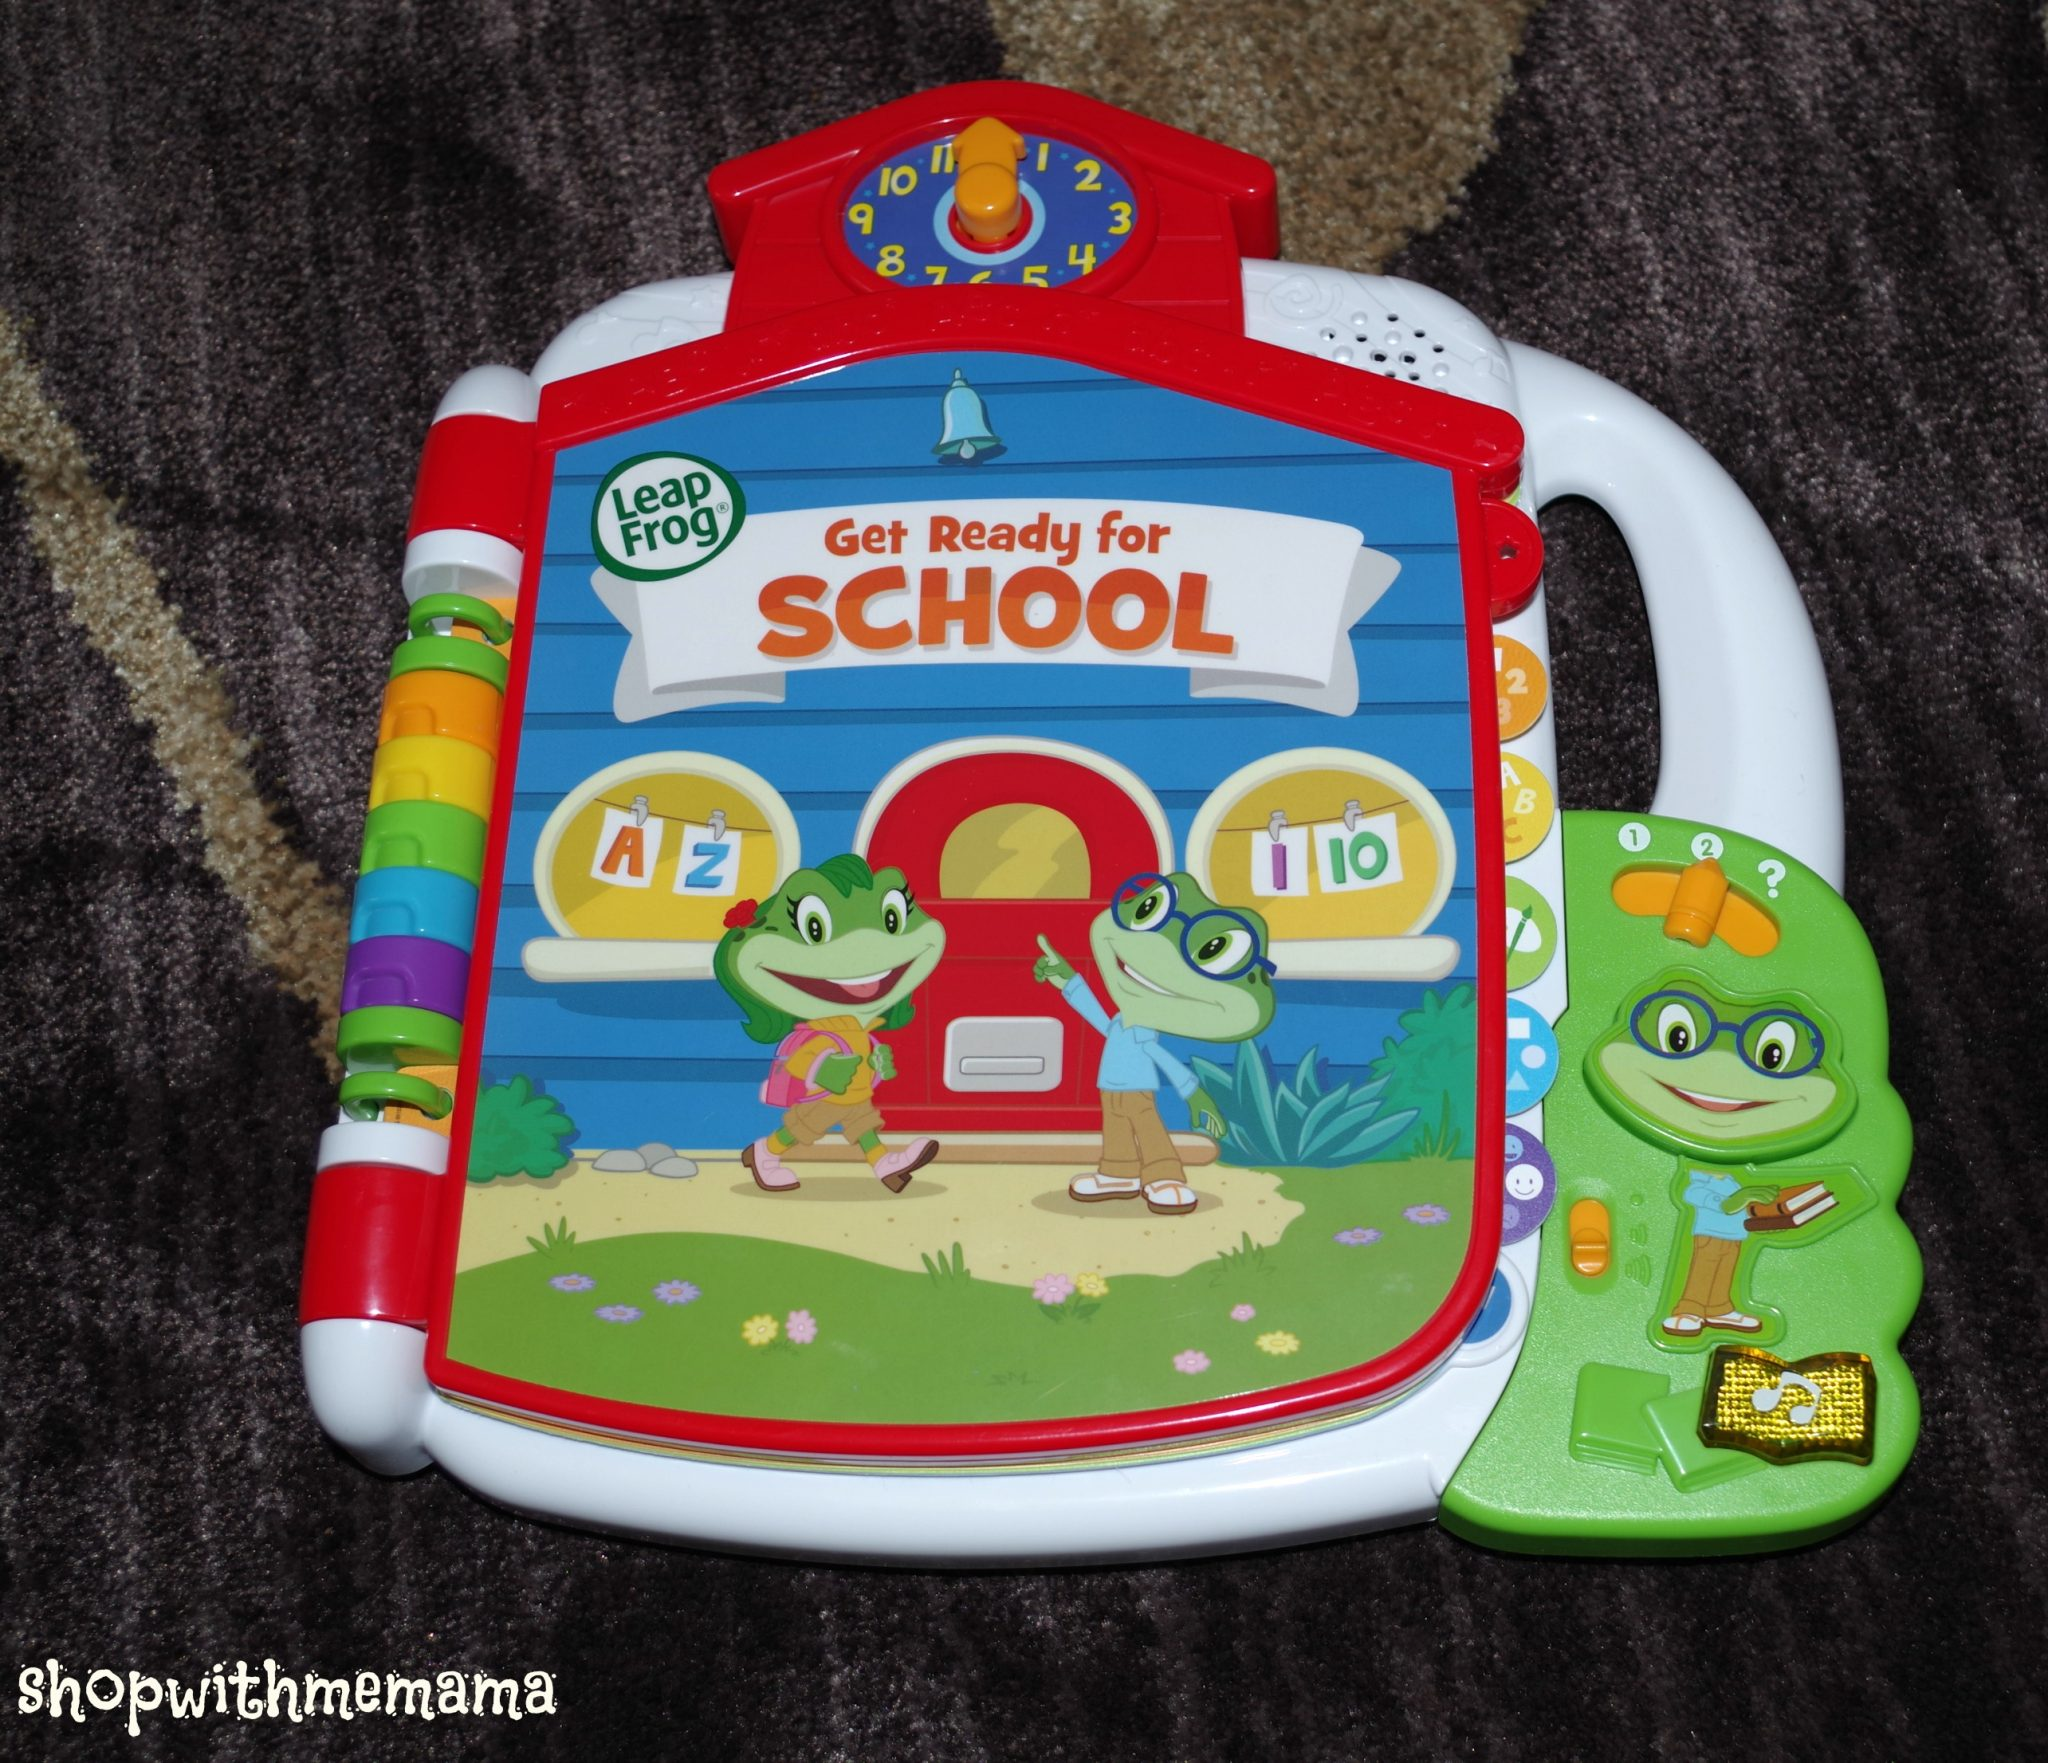 Tad's Get Ready for School Book By LeapFrog